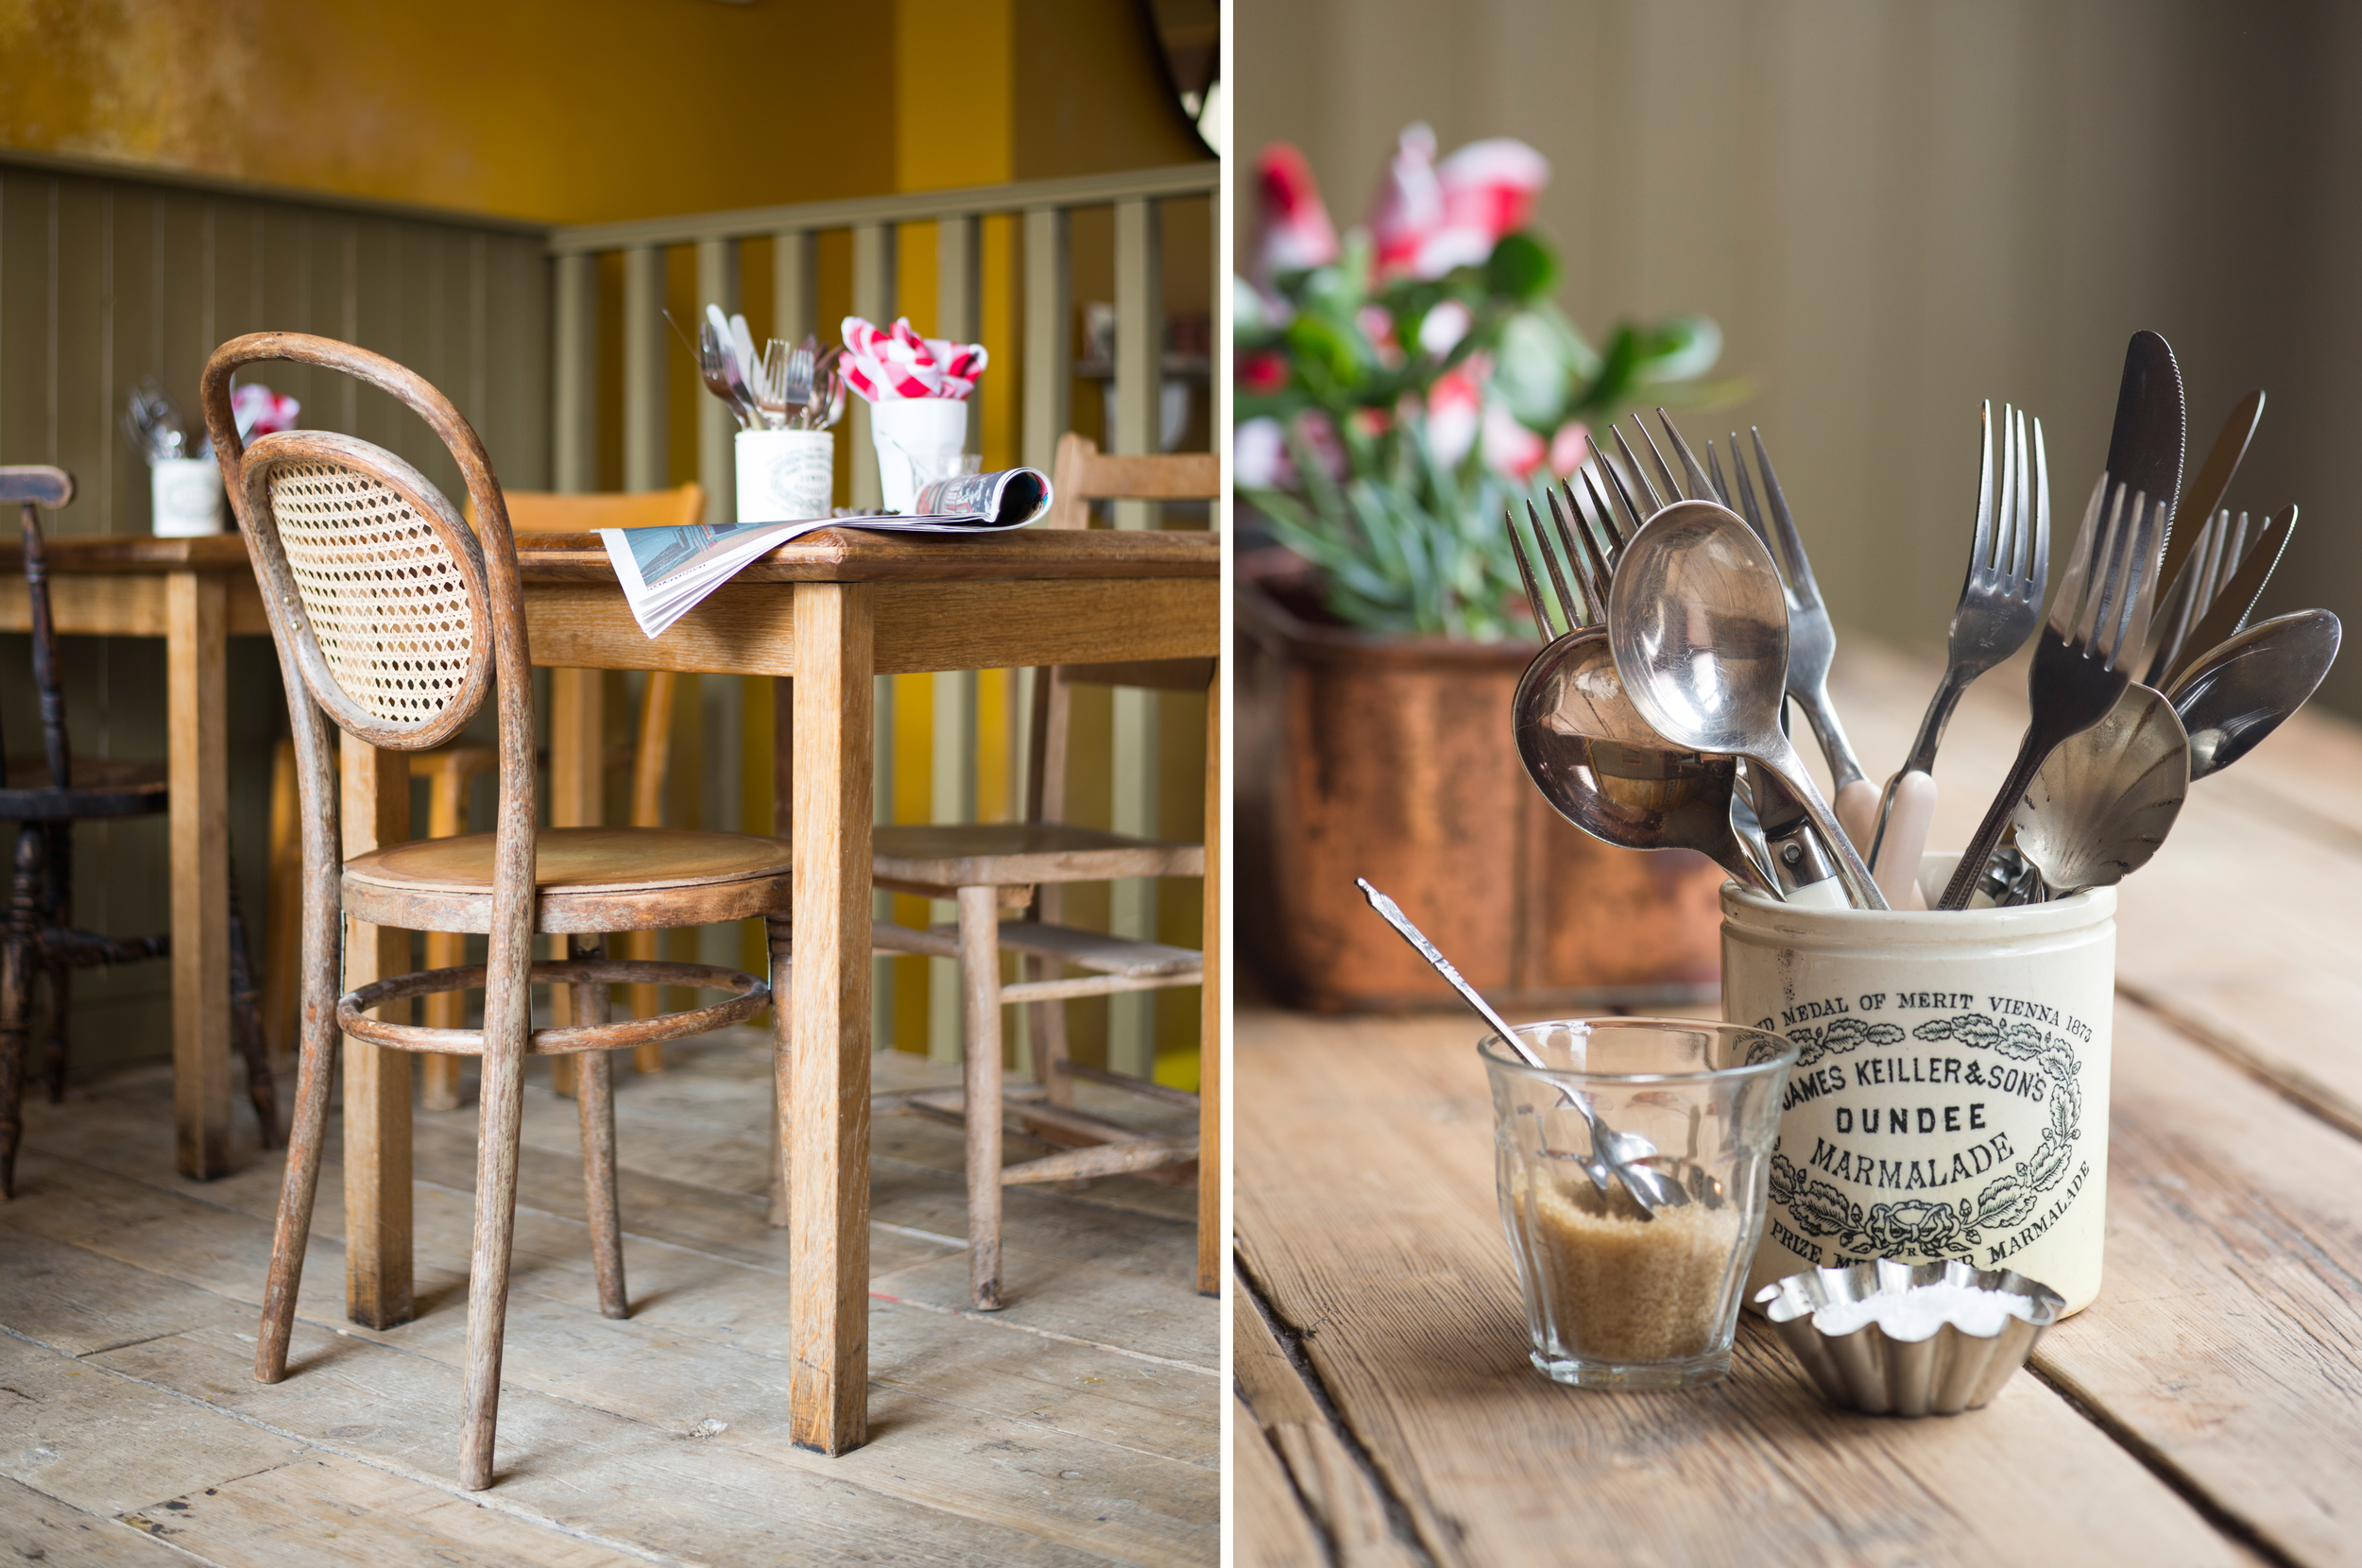 East London cafe interiors photoshoot